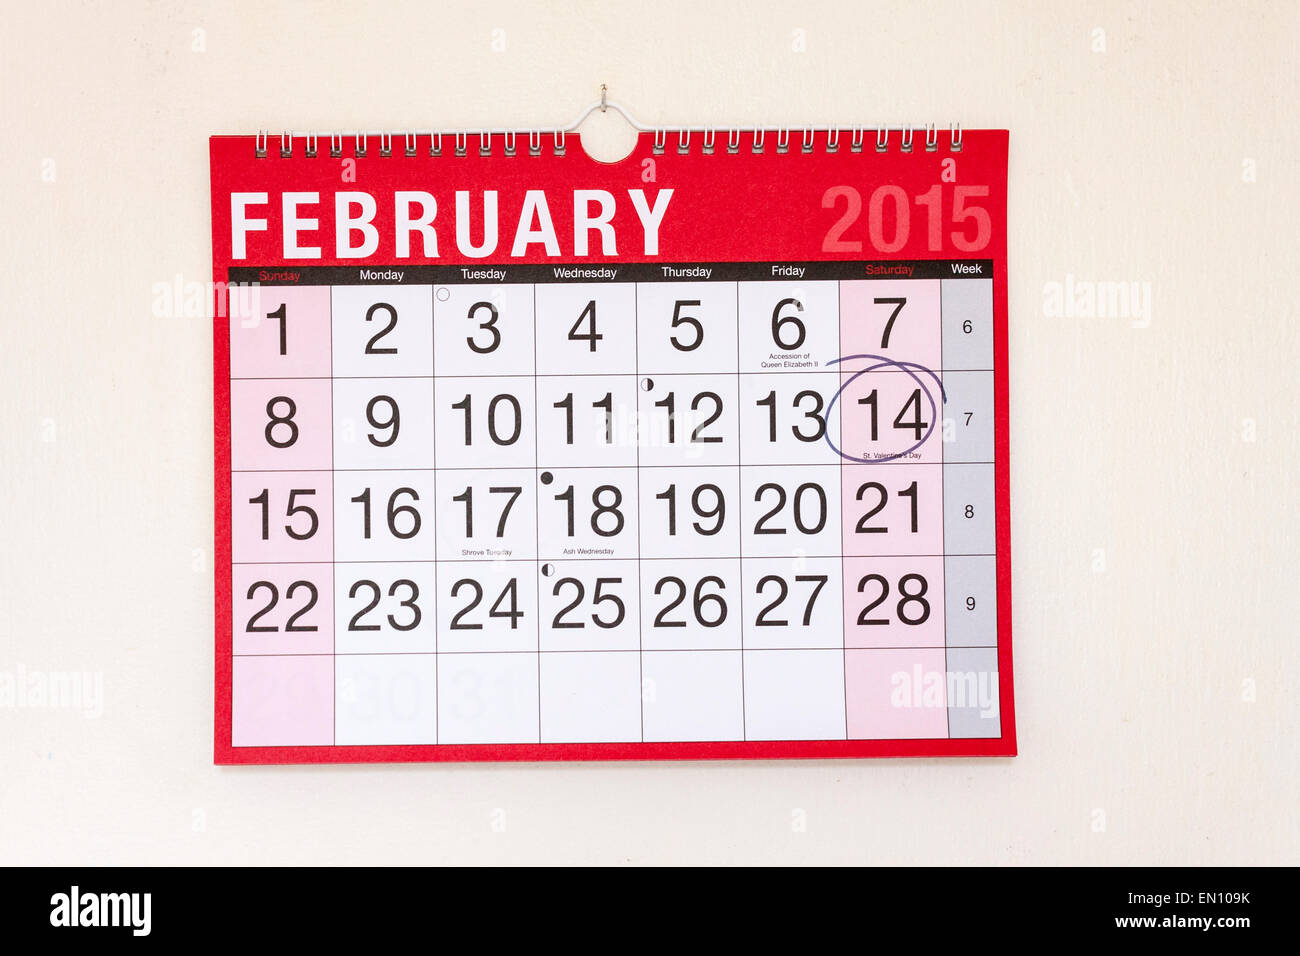 Monthly wall calendar February 2015, St Valentine's Day circled - Stock Image